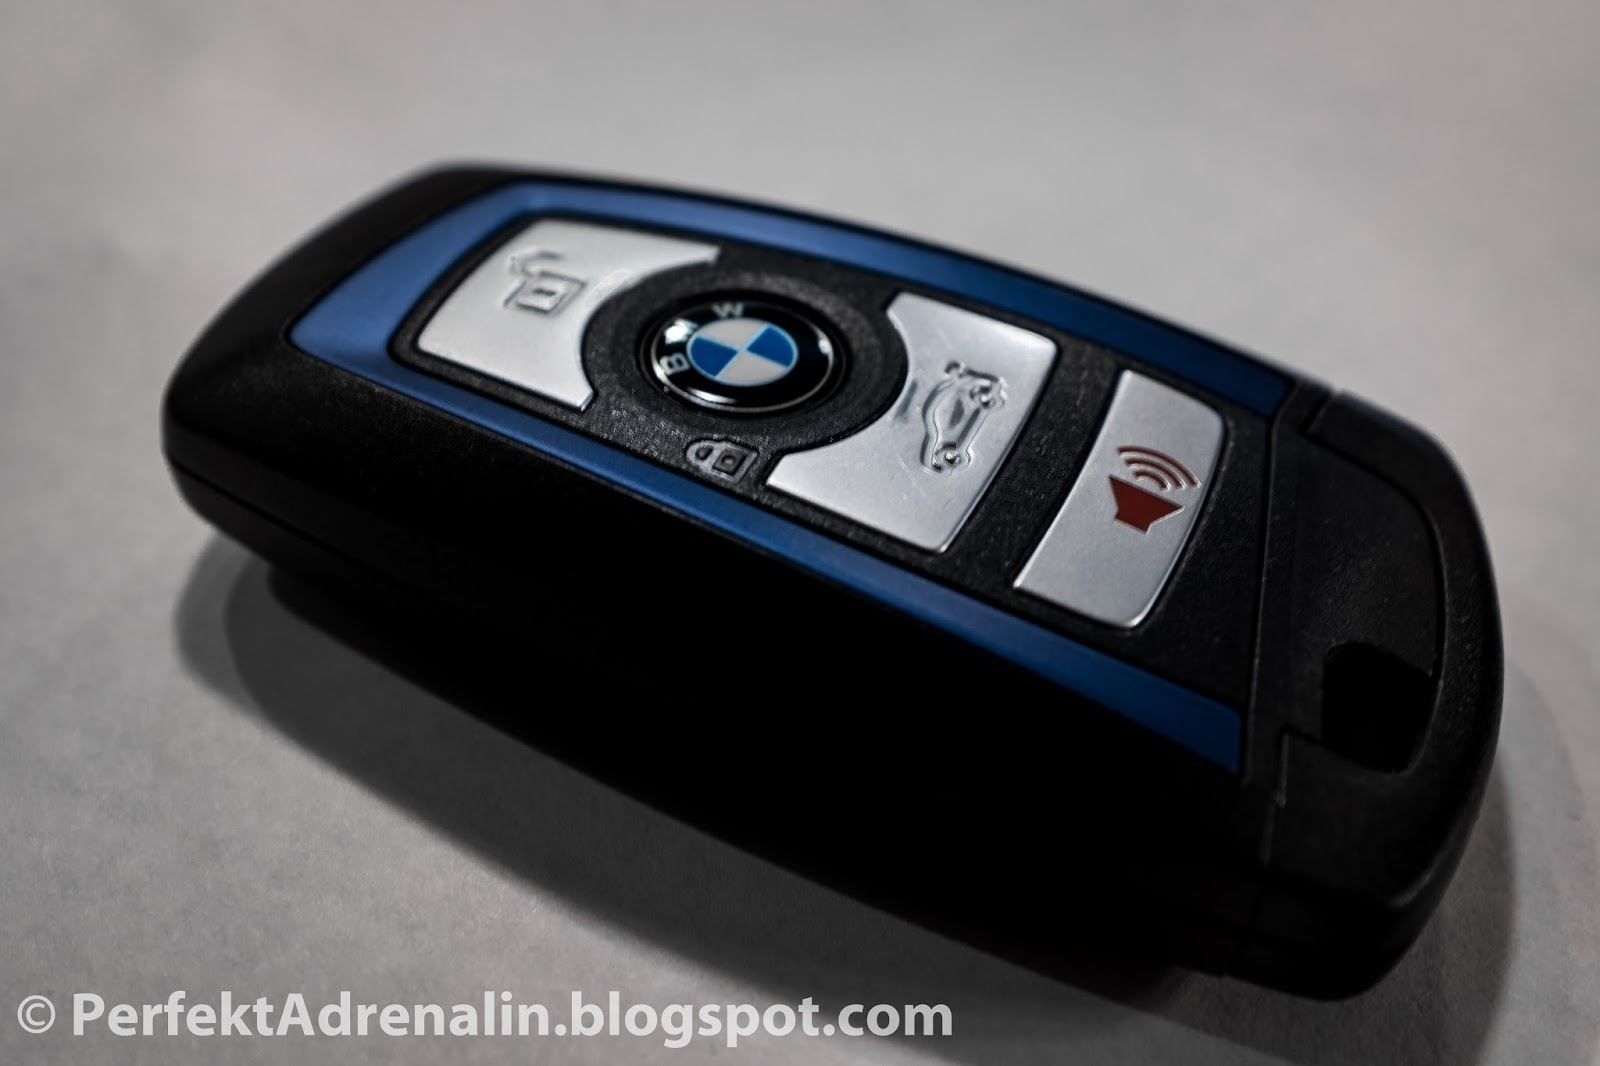 The roundel is also a button and locks the bmw